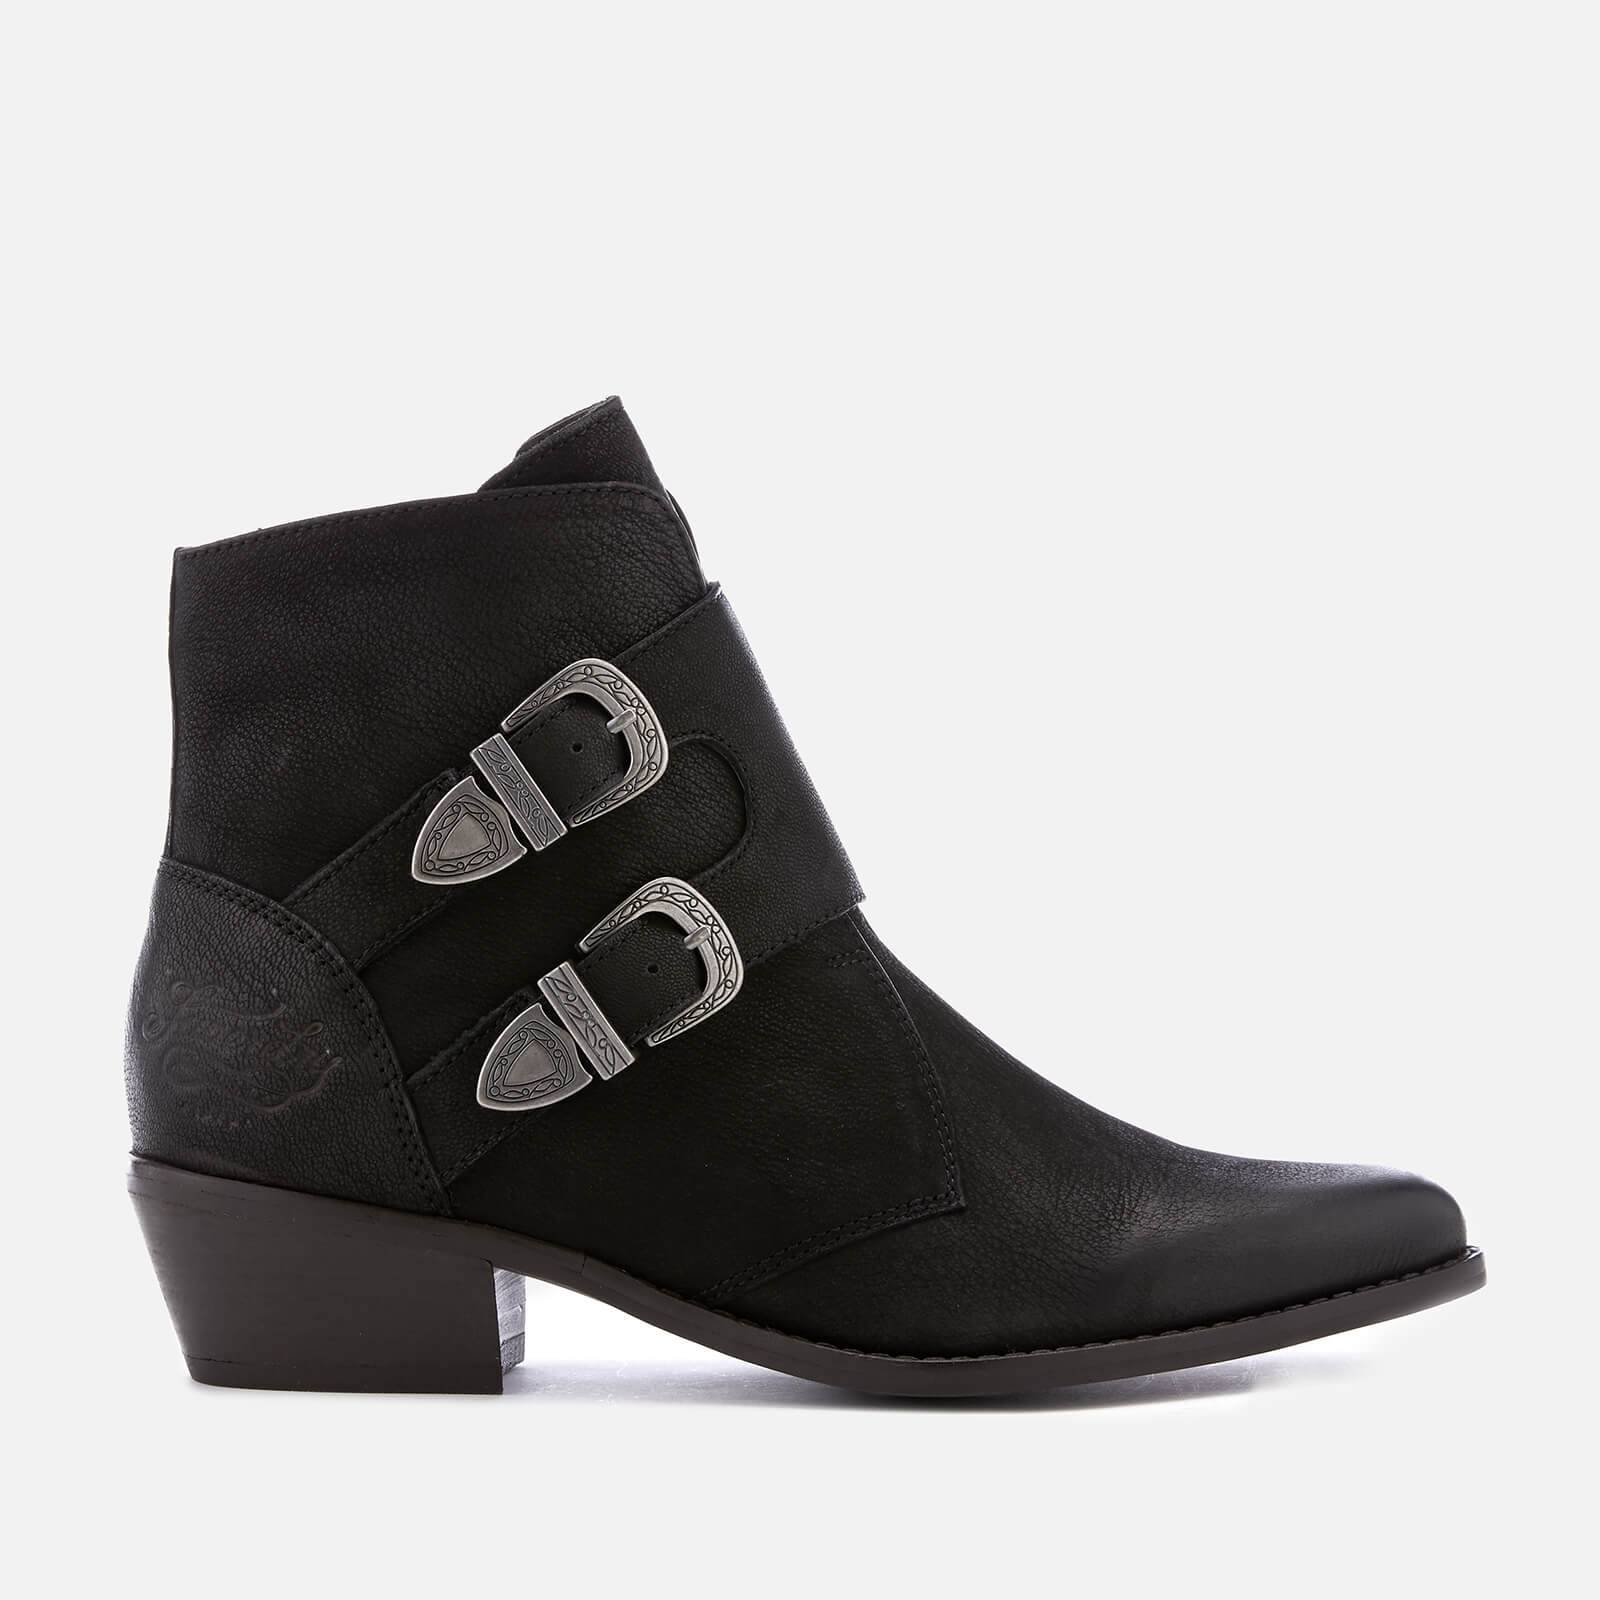 Superdry Women's Rodeo Monk Heeled Ankle Boots - Black - UK 3 - Black